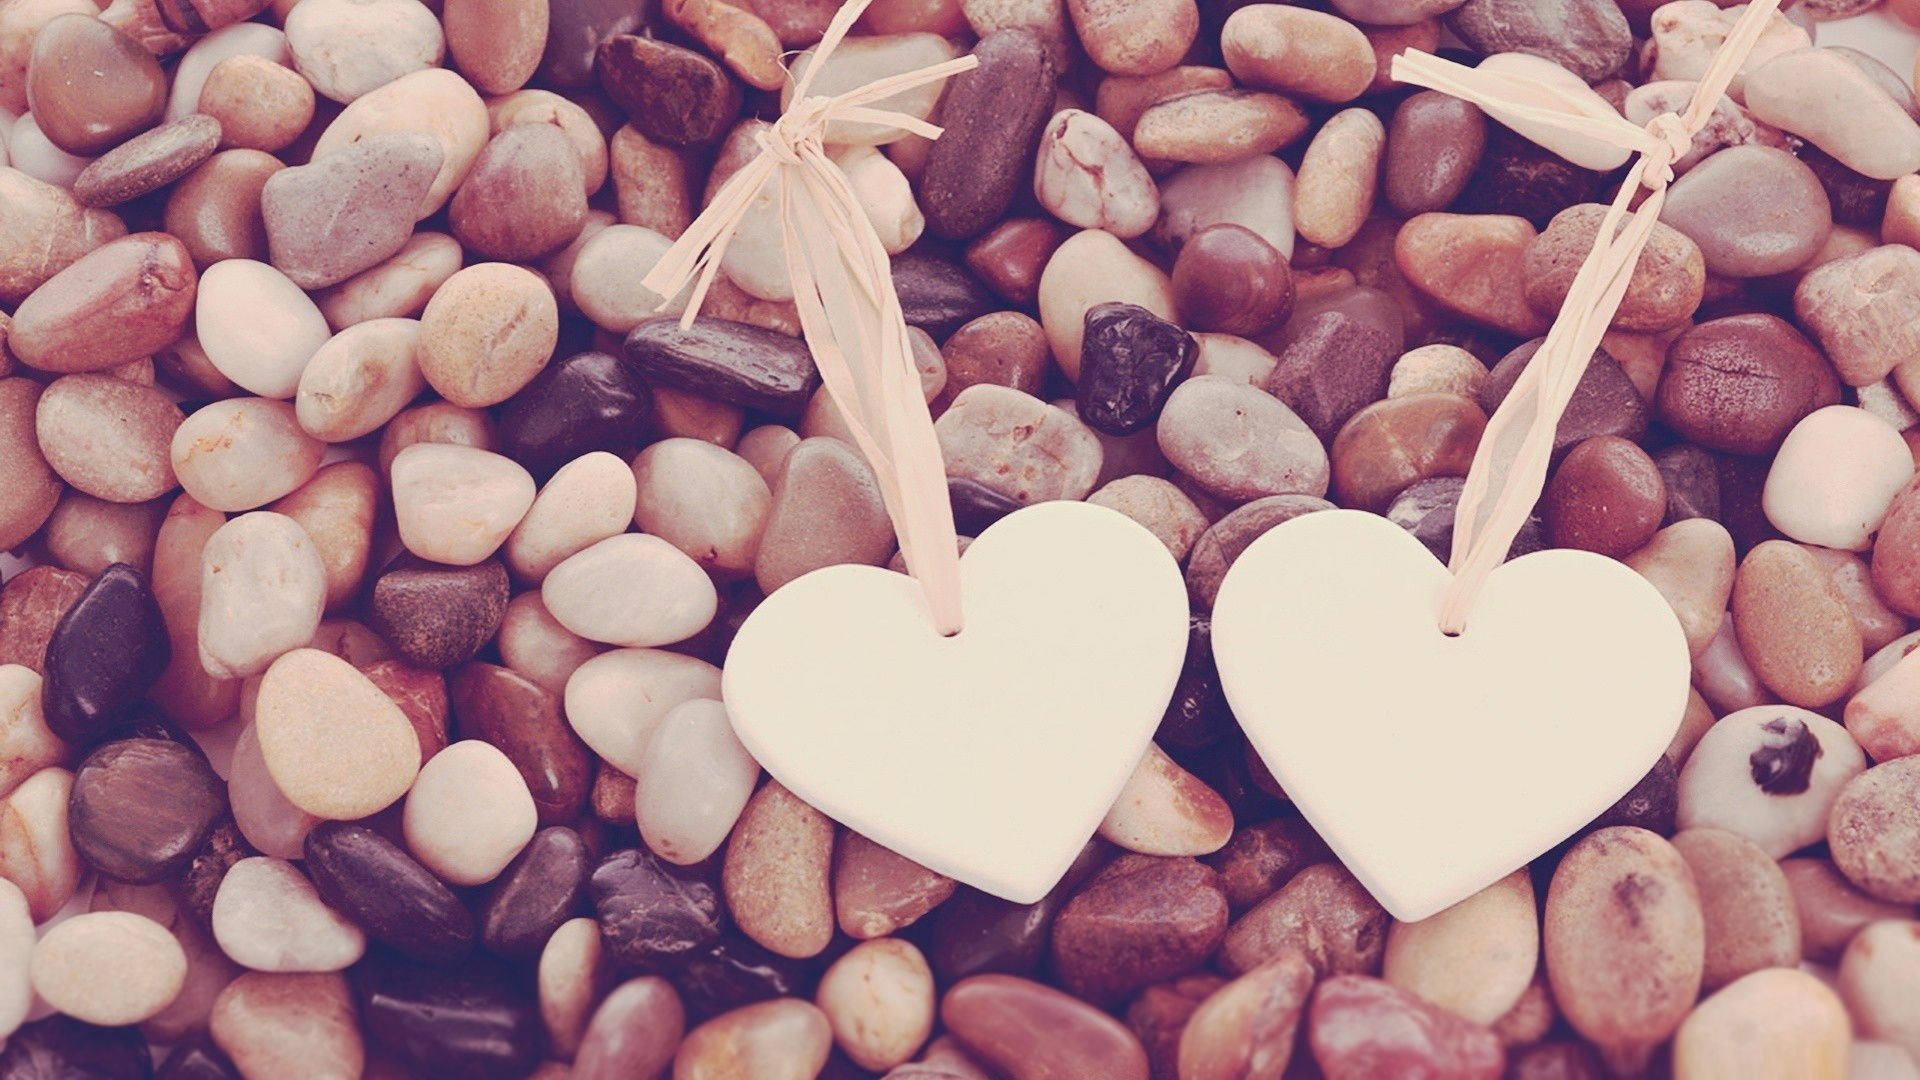 Two Hearts 1080p Hd Wallpaper Love Ideas For The House Love